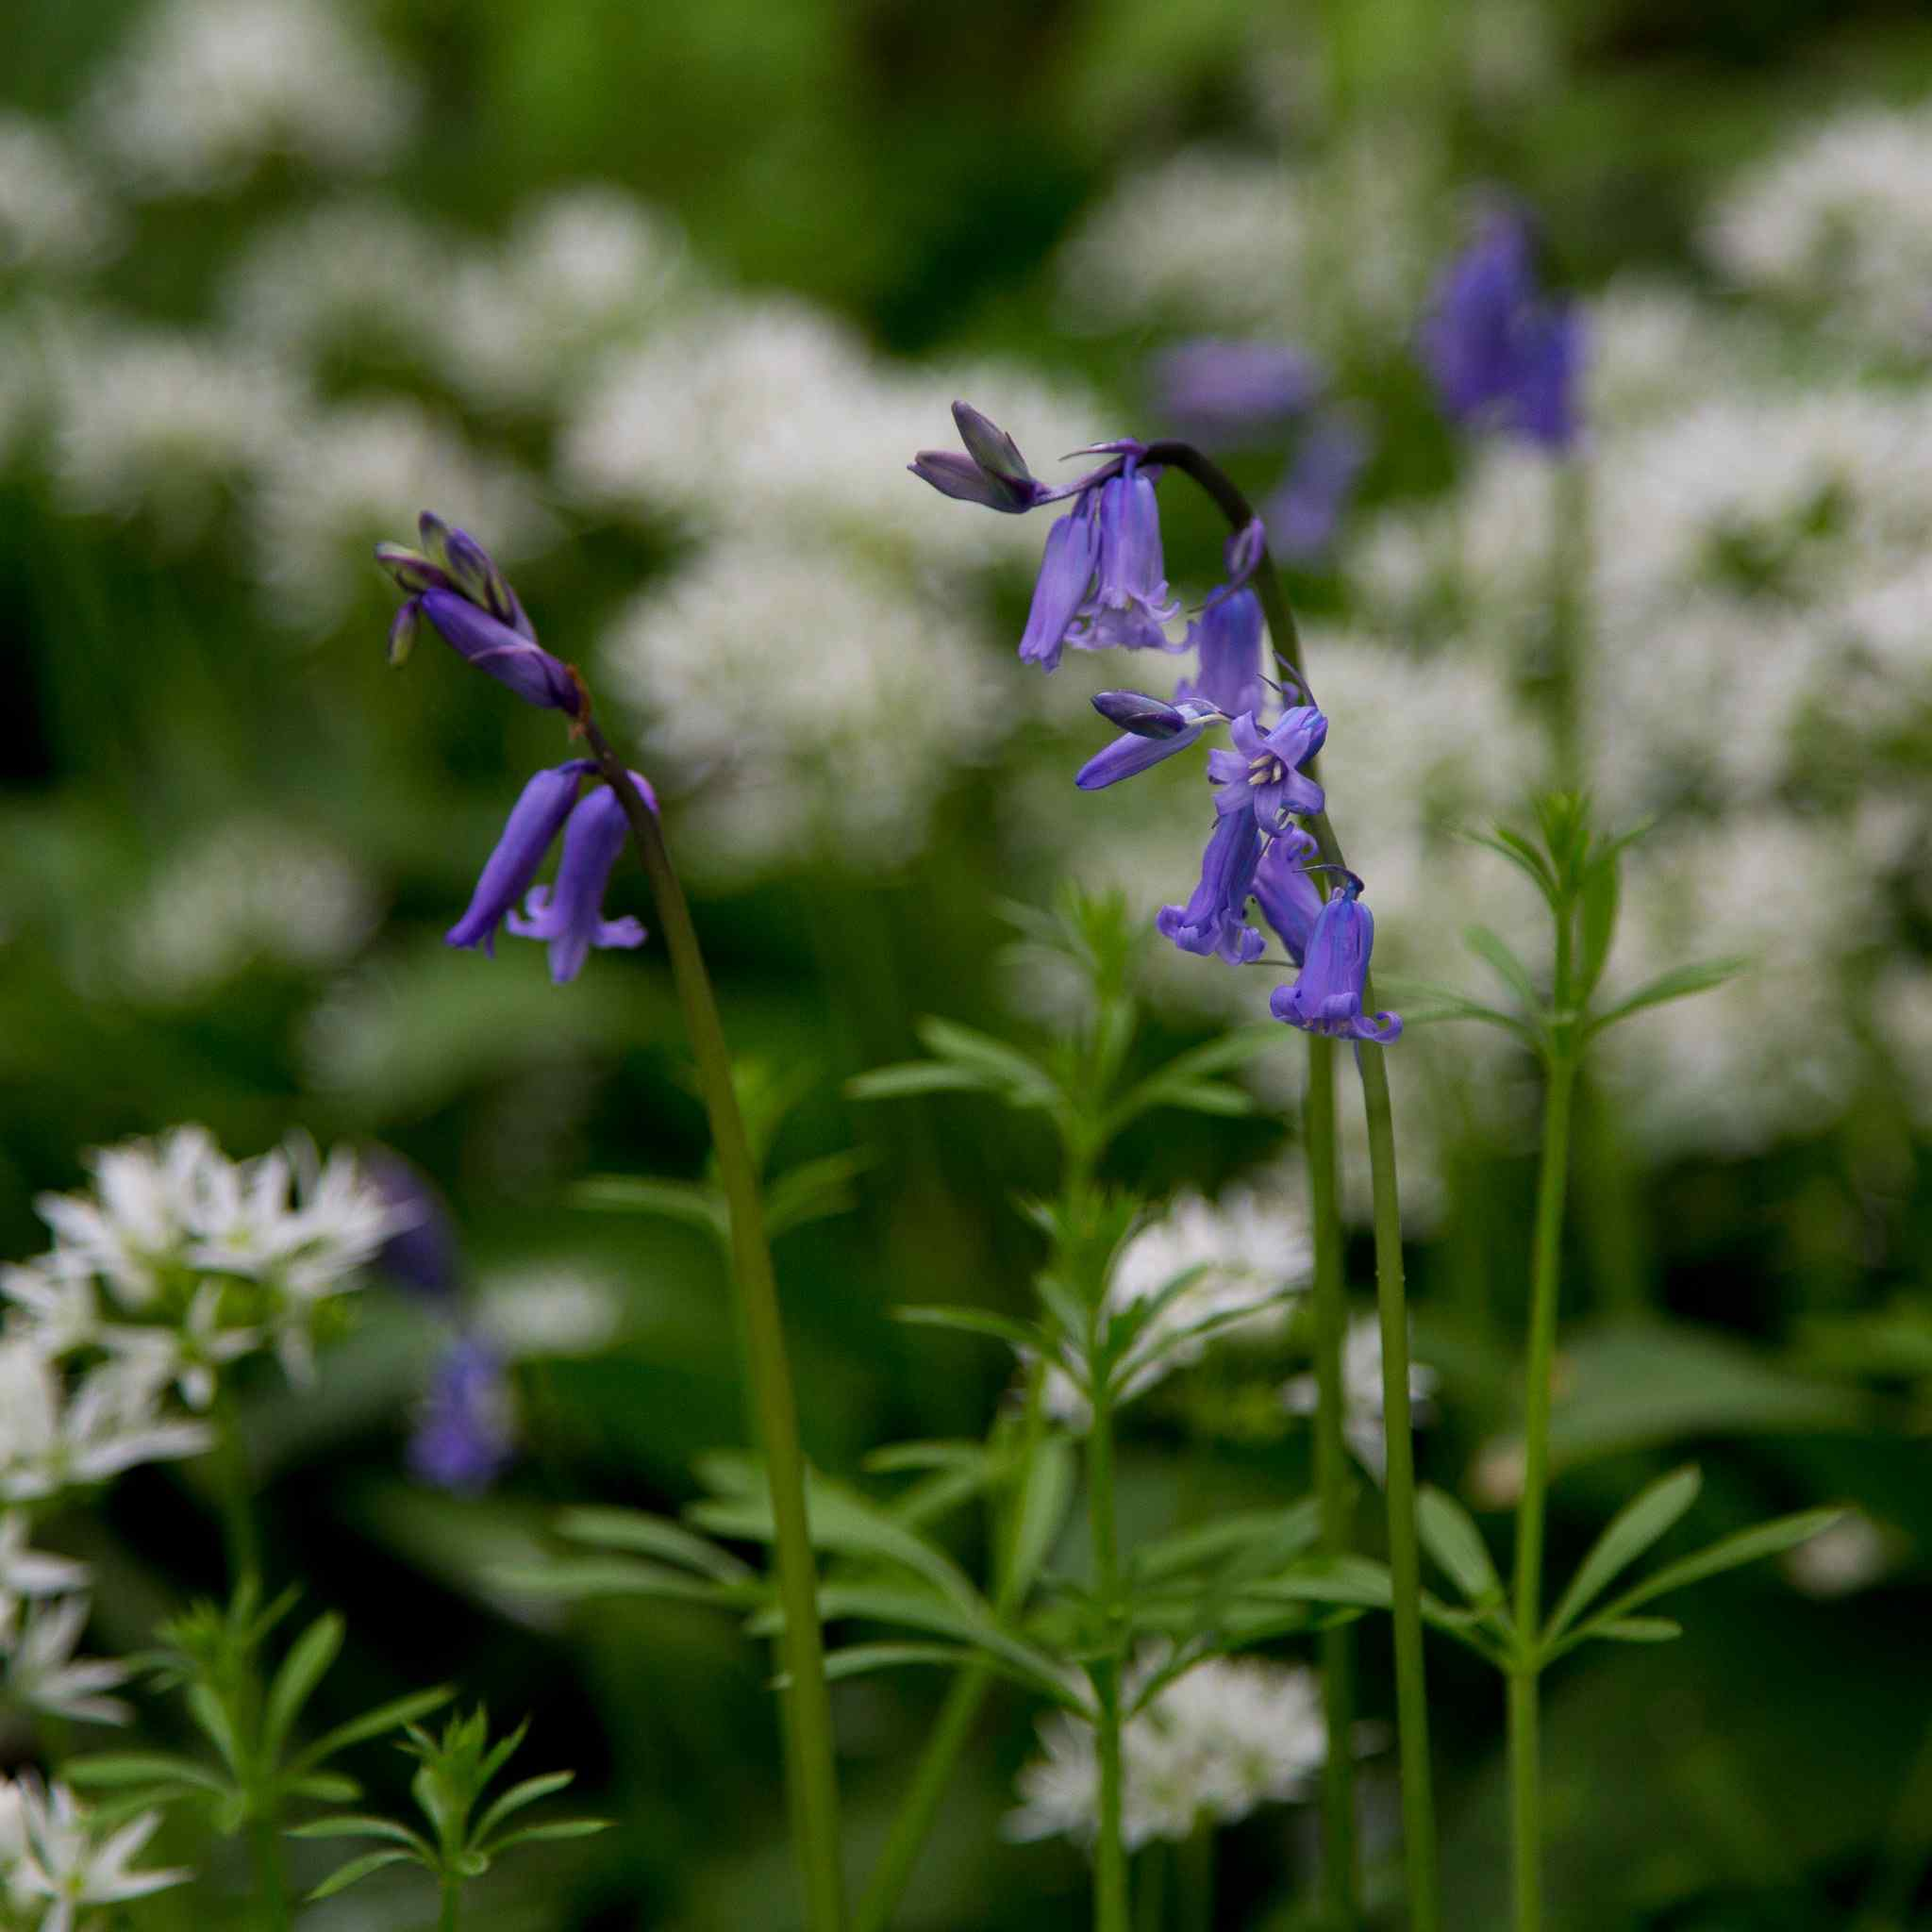 Bluebells and Wild Garlic in the woodland